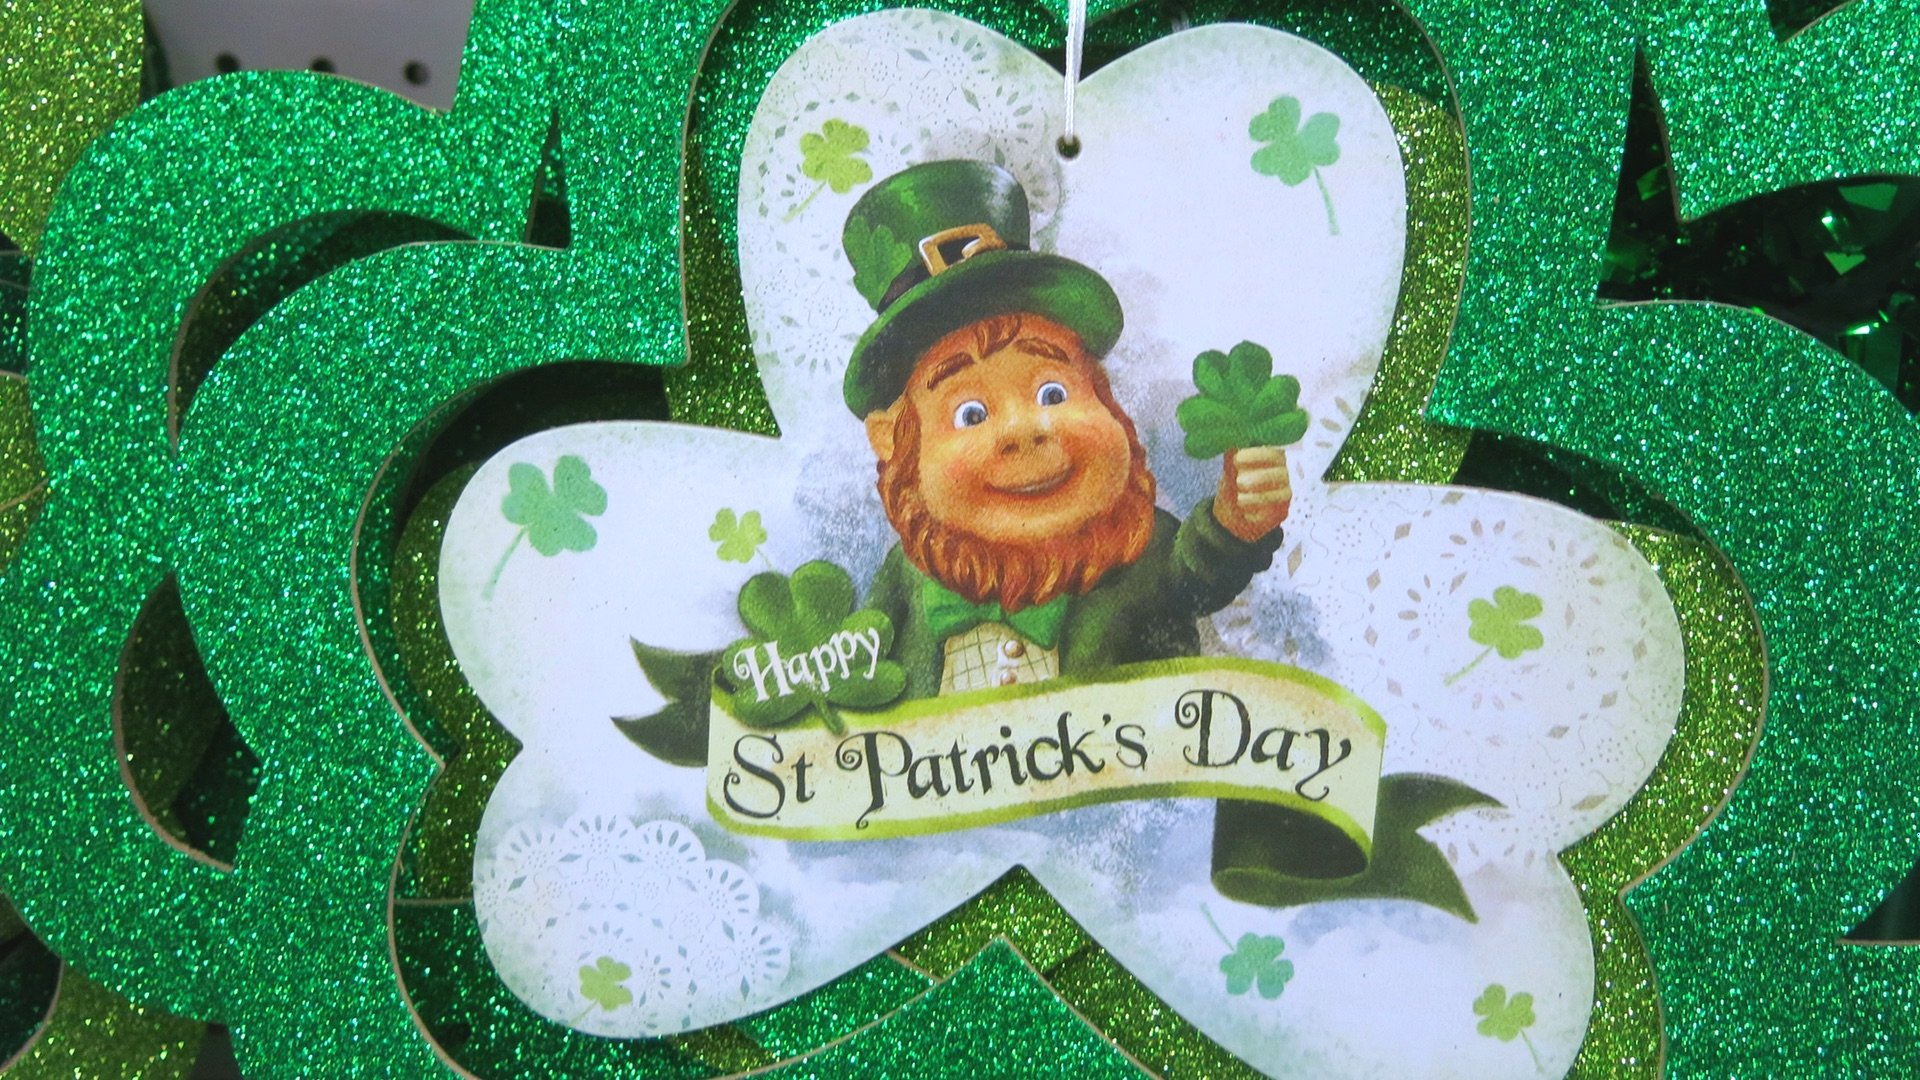 Neighbors Attempt To Salvage St Patrick S Day Fun With No Contact